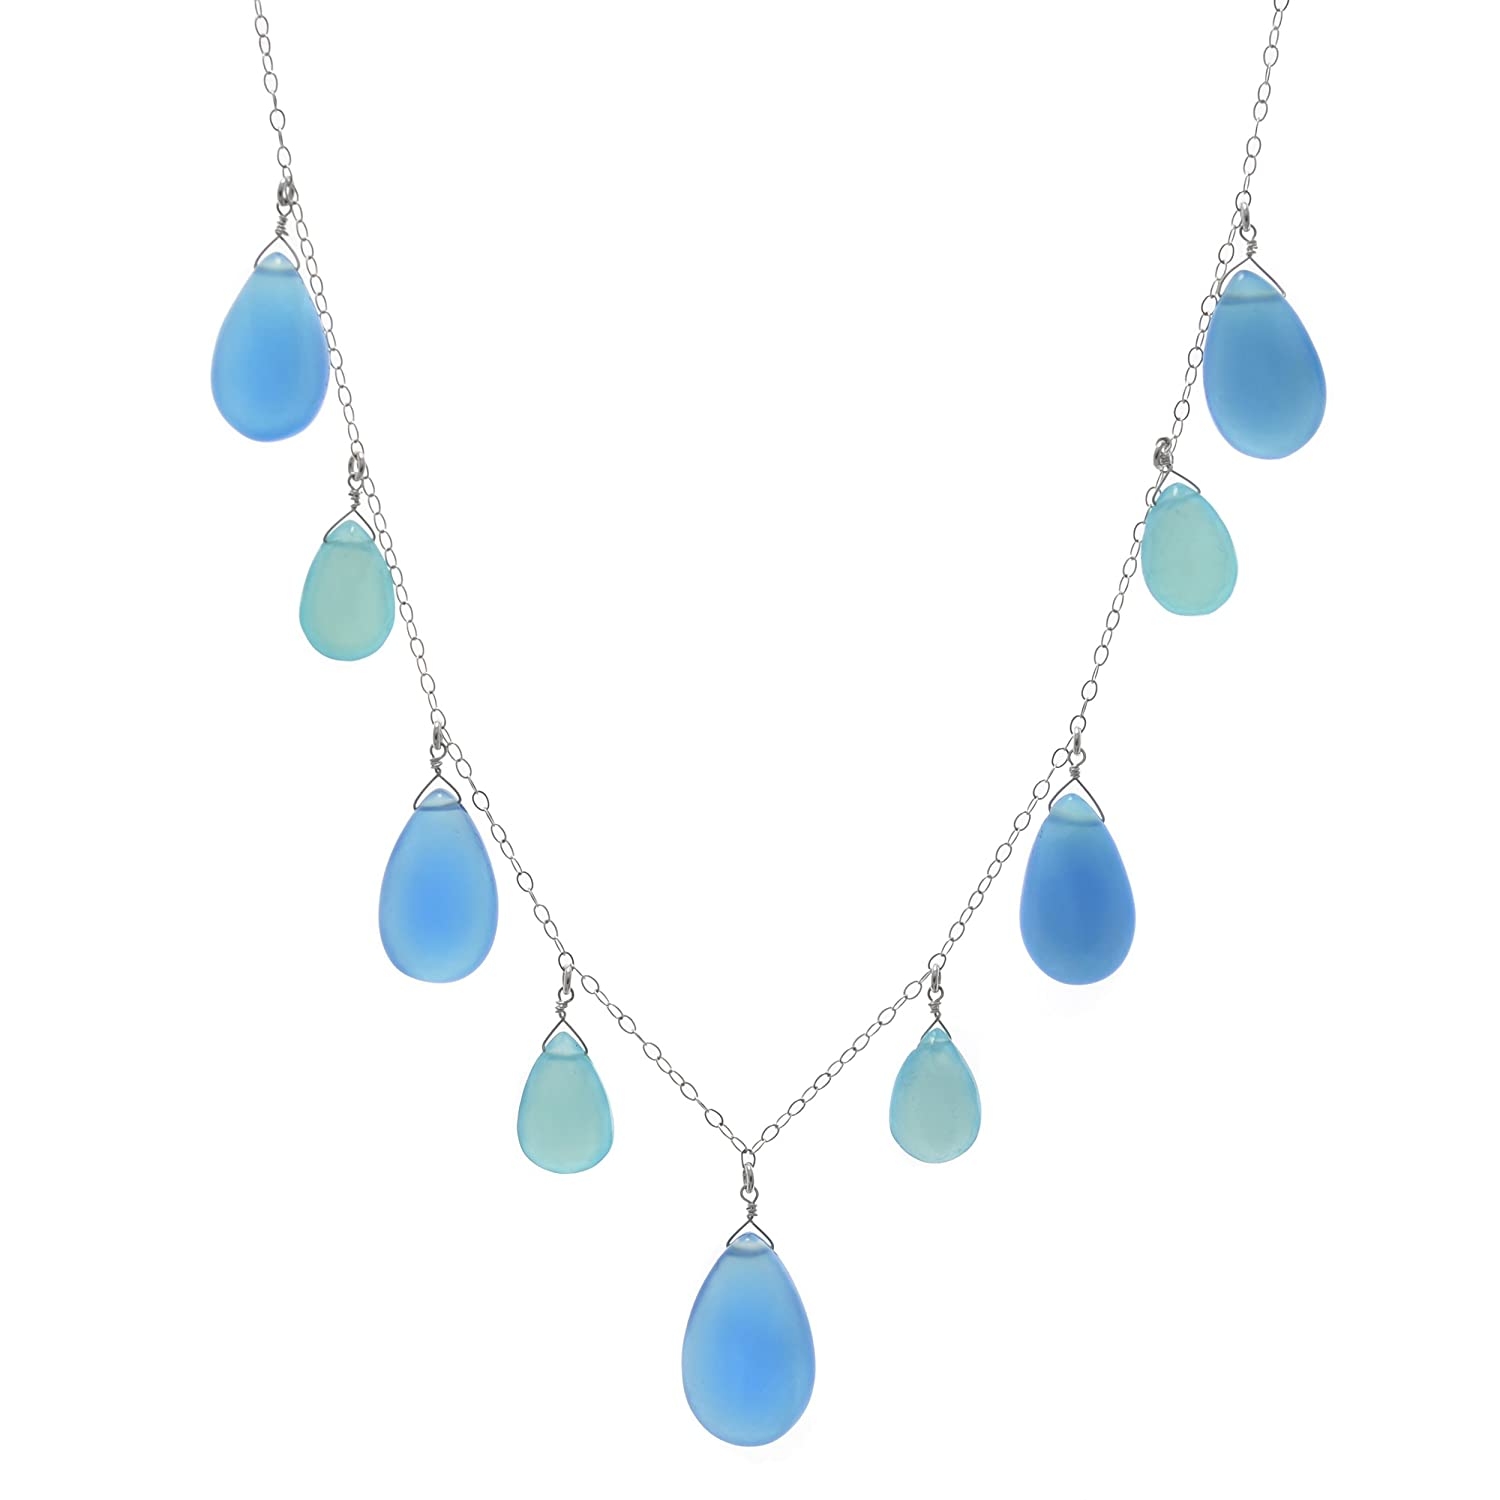 9f6638269 Amazon.com: ASHANTI Blue Chalcedony Briolette Natural Gemstone Sterling  Silver Handmade 18 inch Necklace: Jewelry